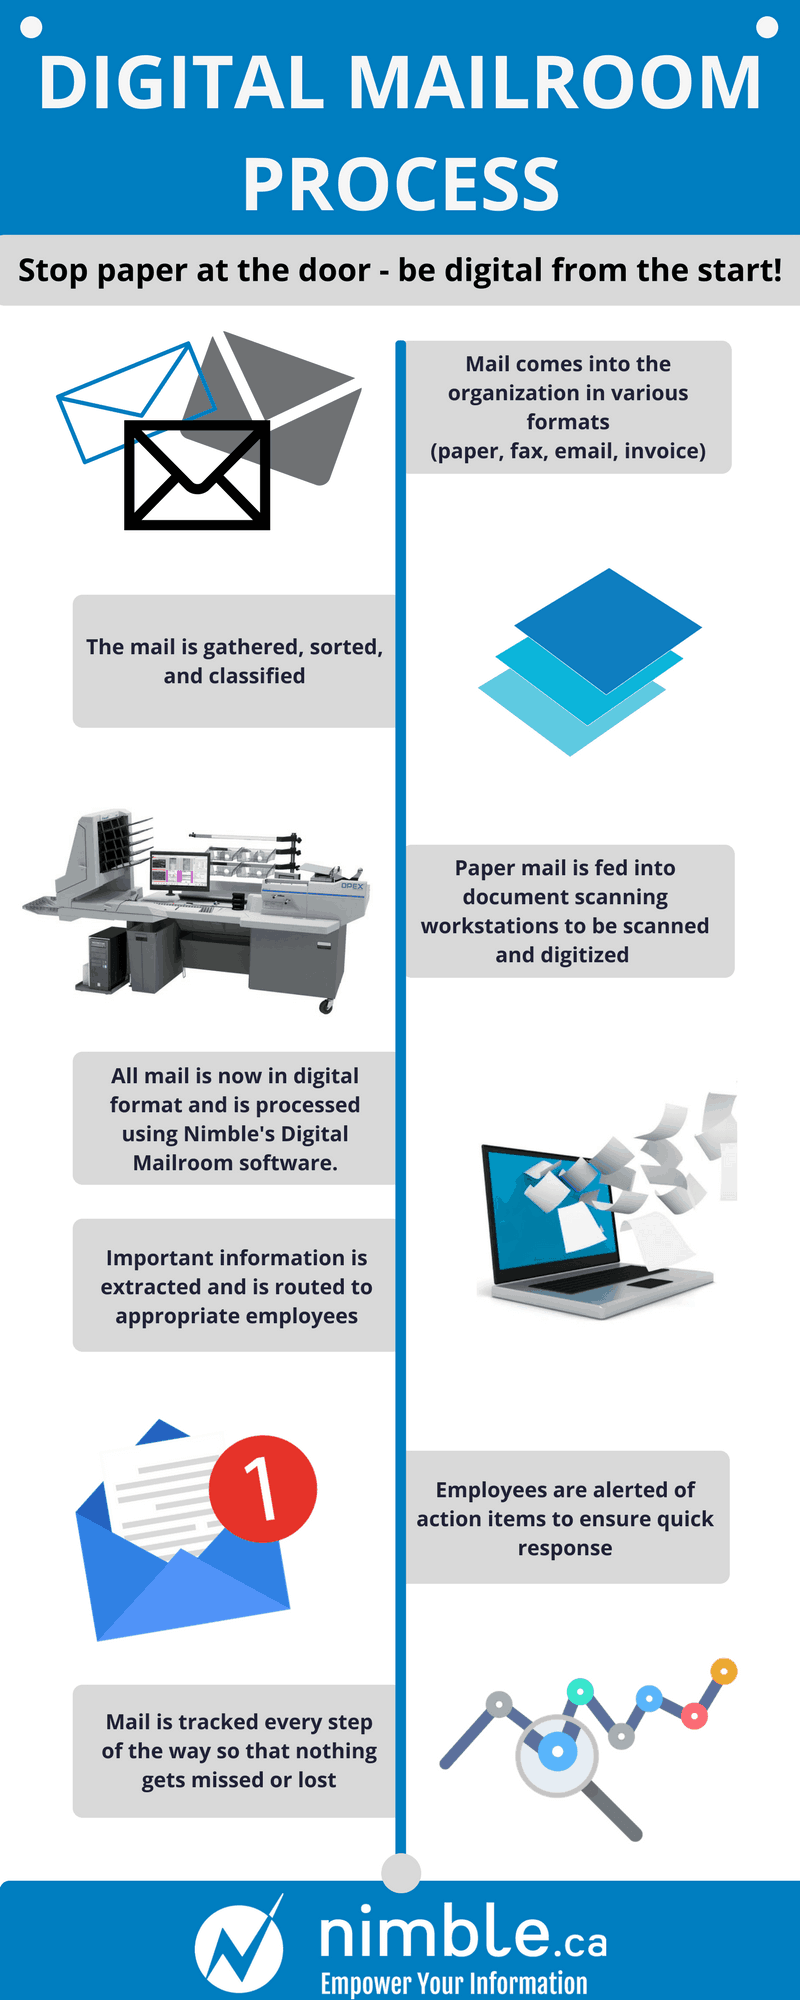 Digital Mailroom Automation Services